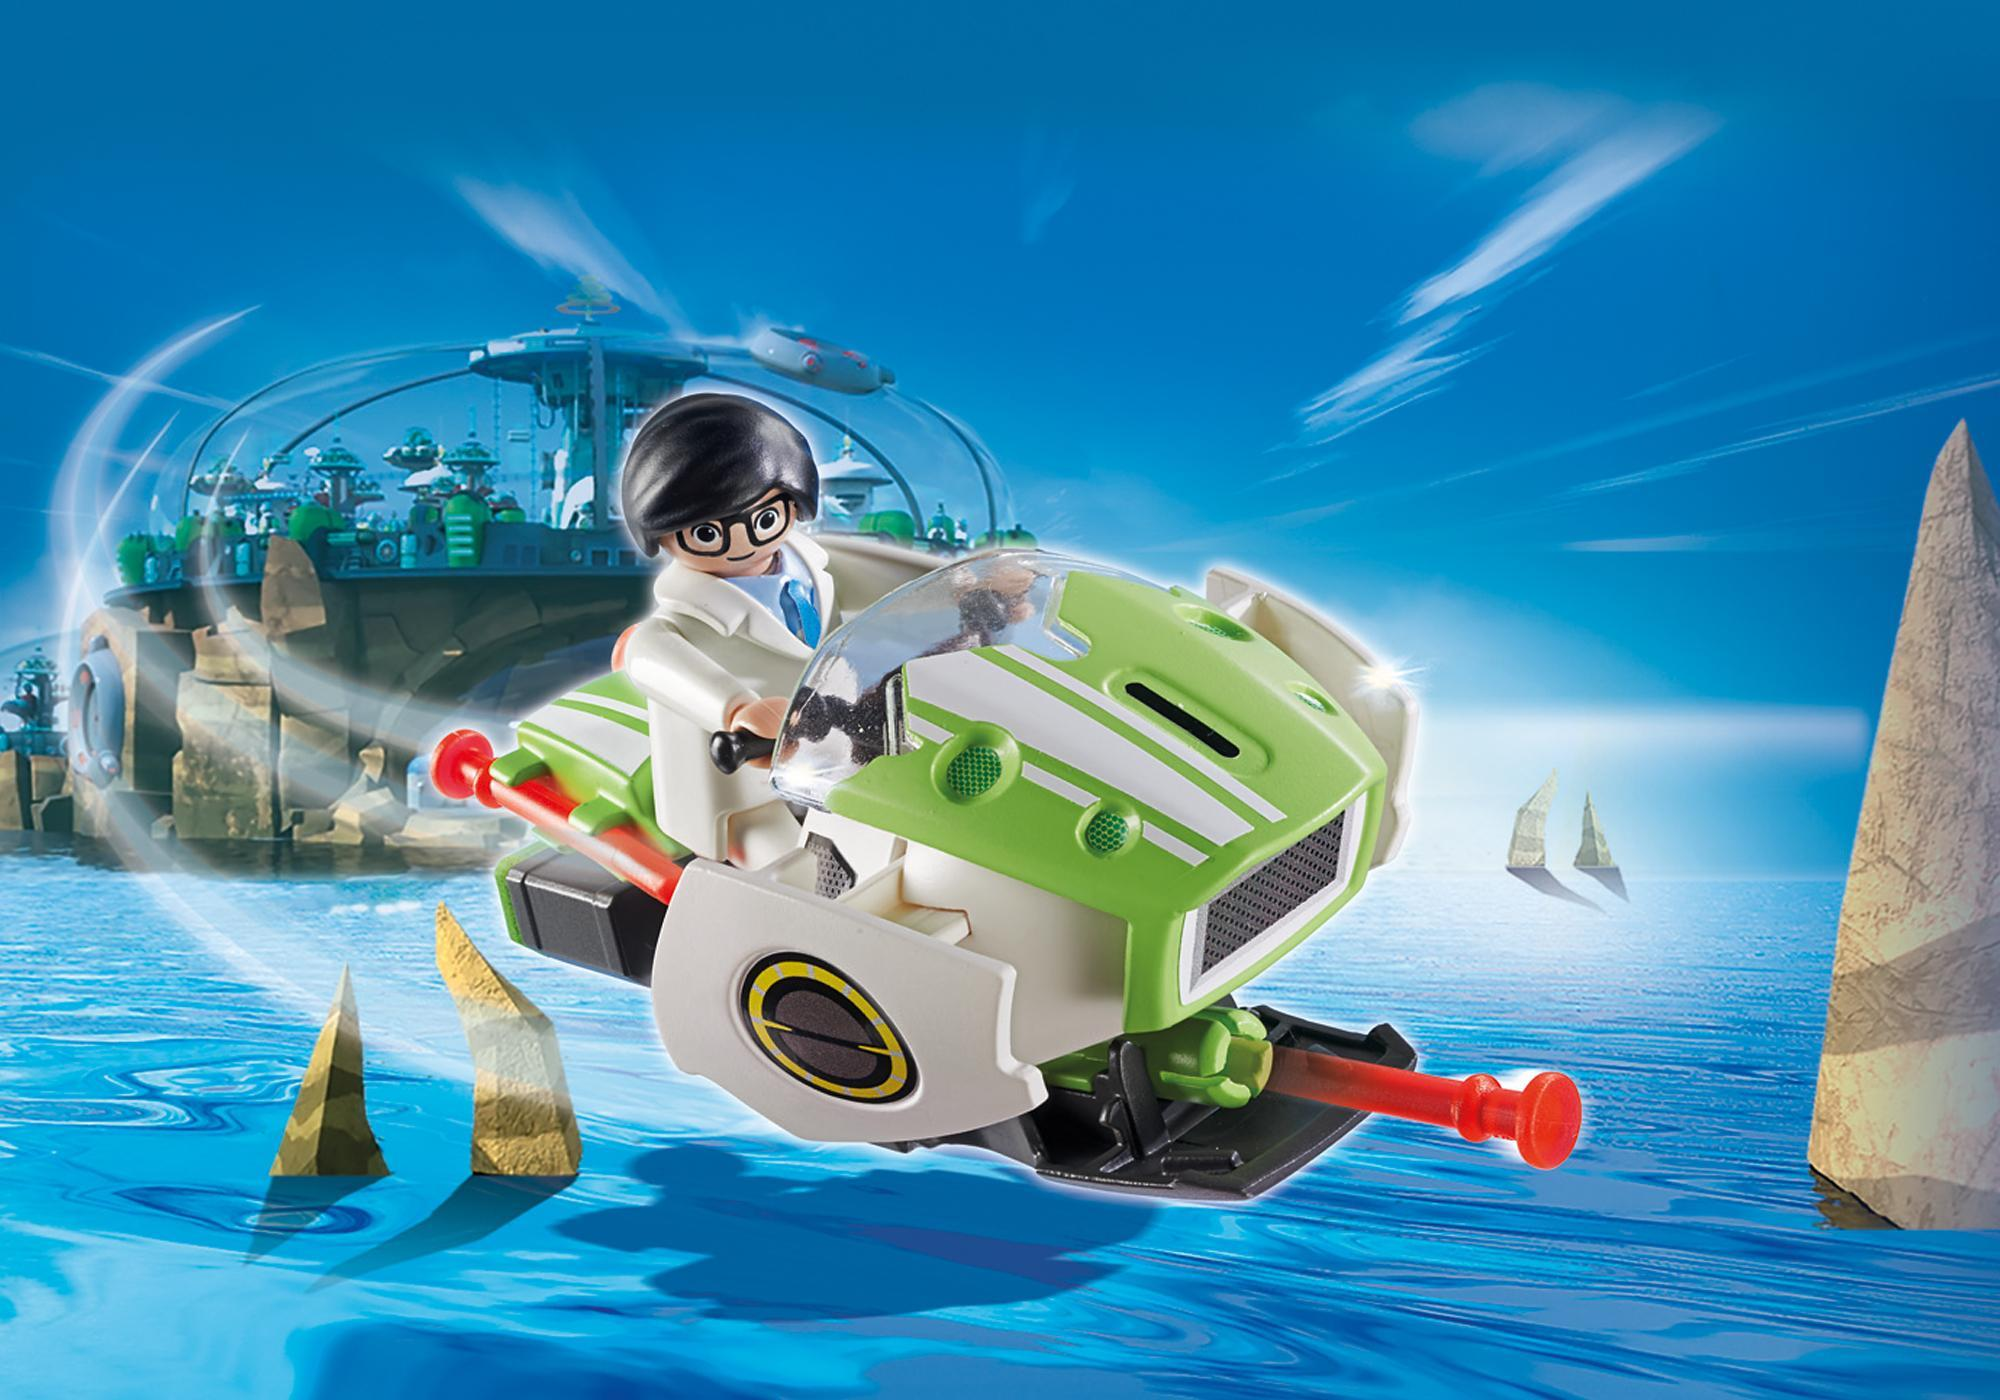 http://media.playmobil.com/i/playmobil/6691_product_detail/Skyjet